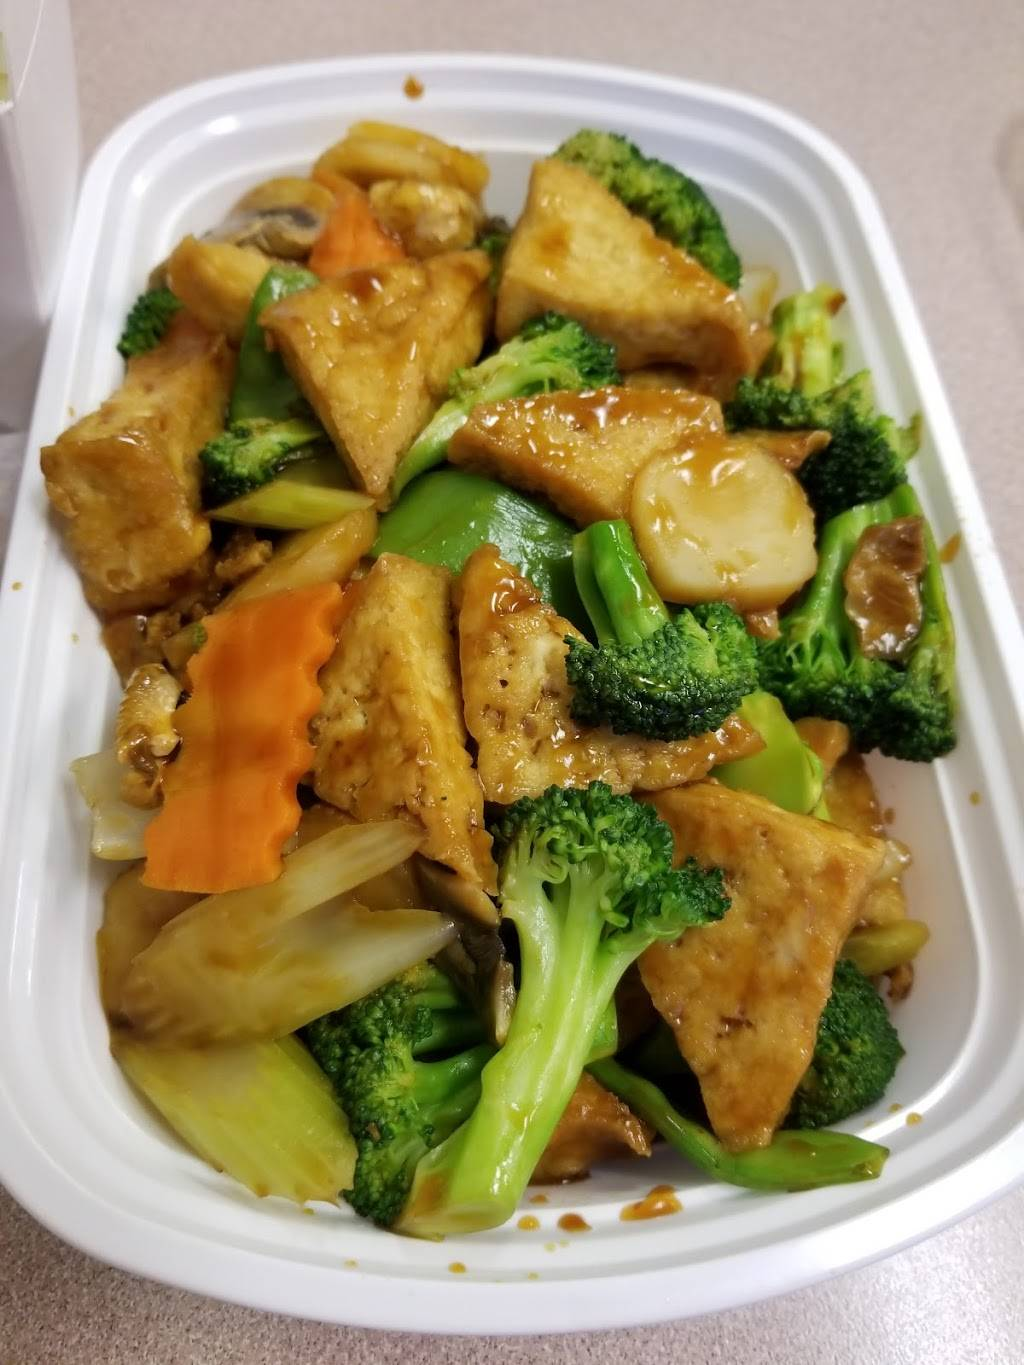 Peking Kitchen | restaurant | 5297 Lapeer Rd, Smiths Creek, MI 48074, USA | 8109668899 OR +1 810-966-8899